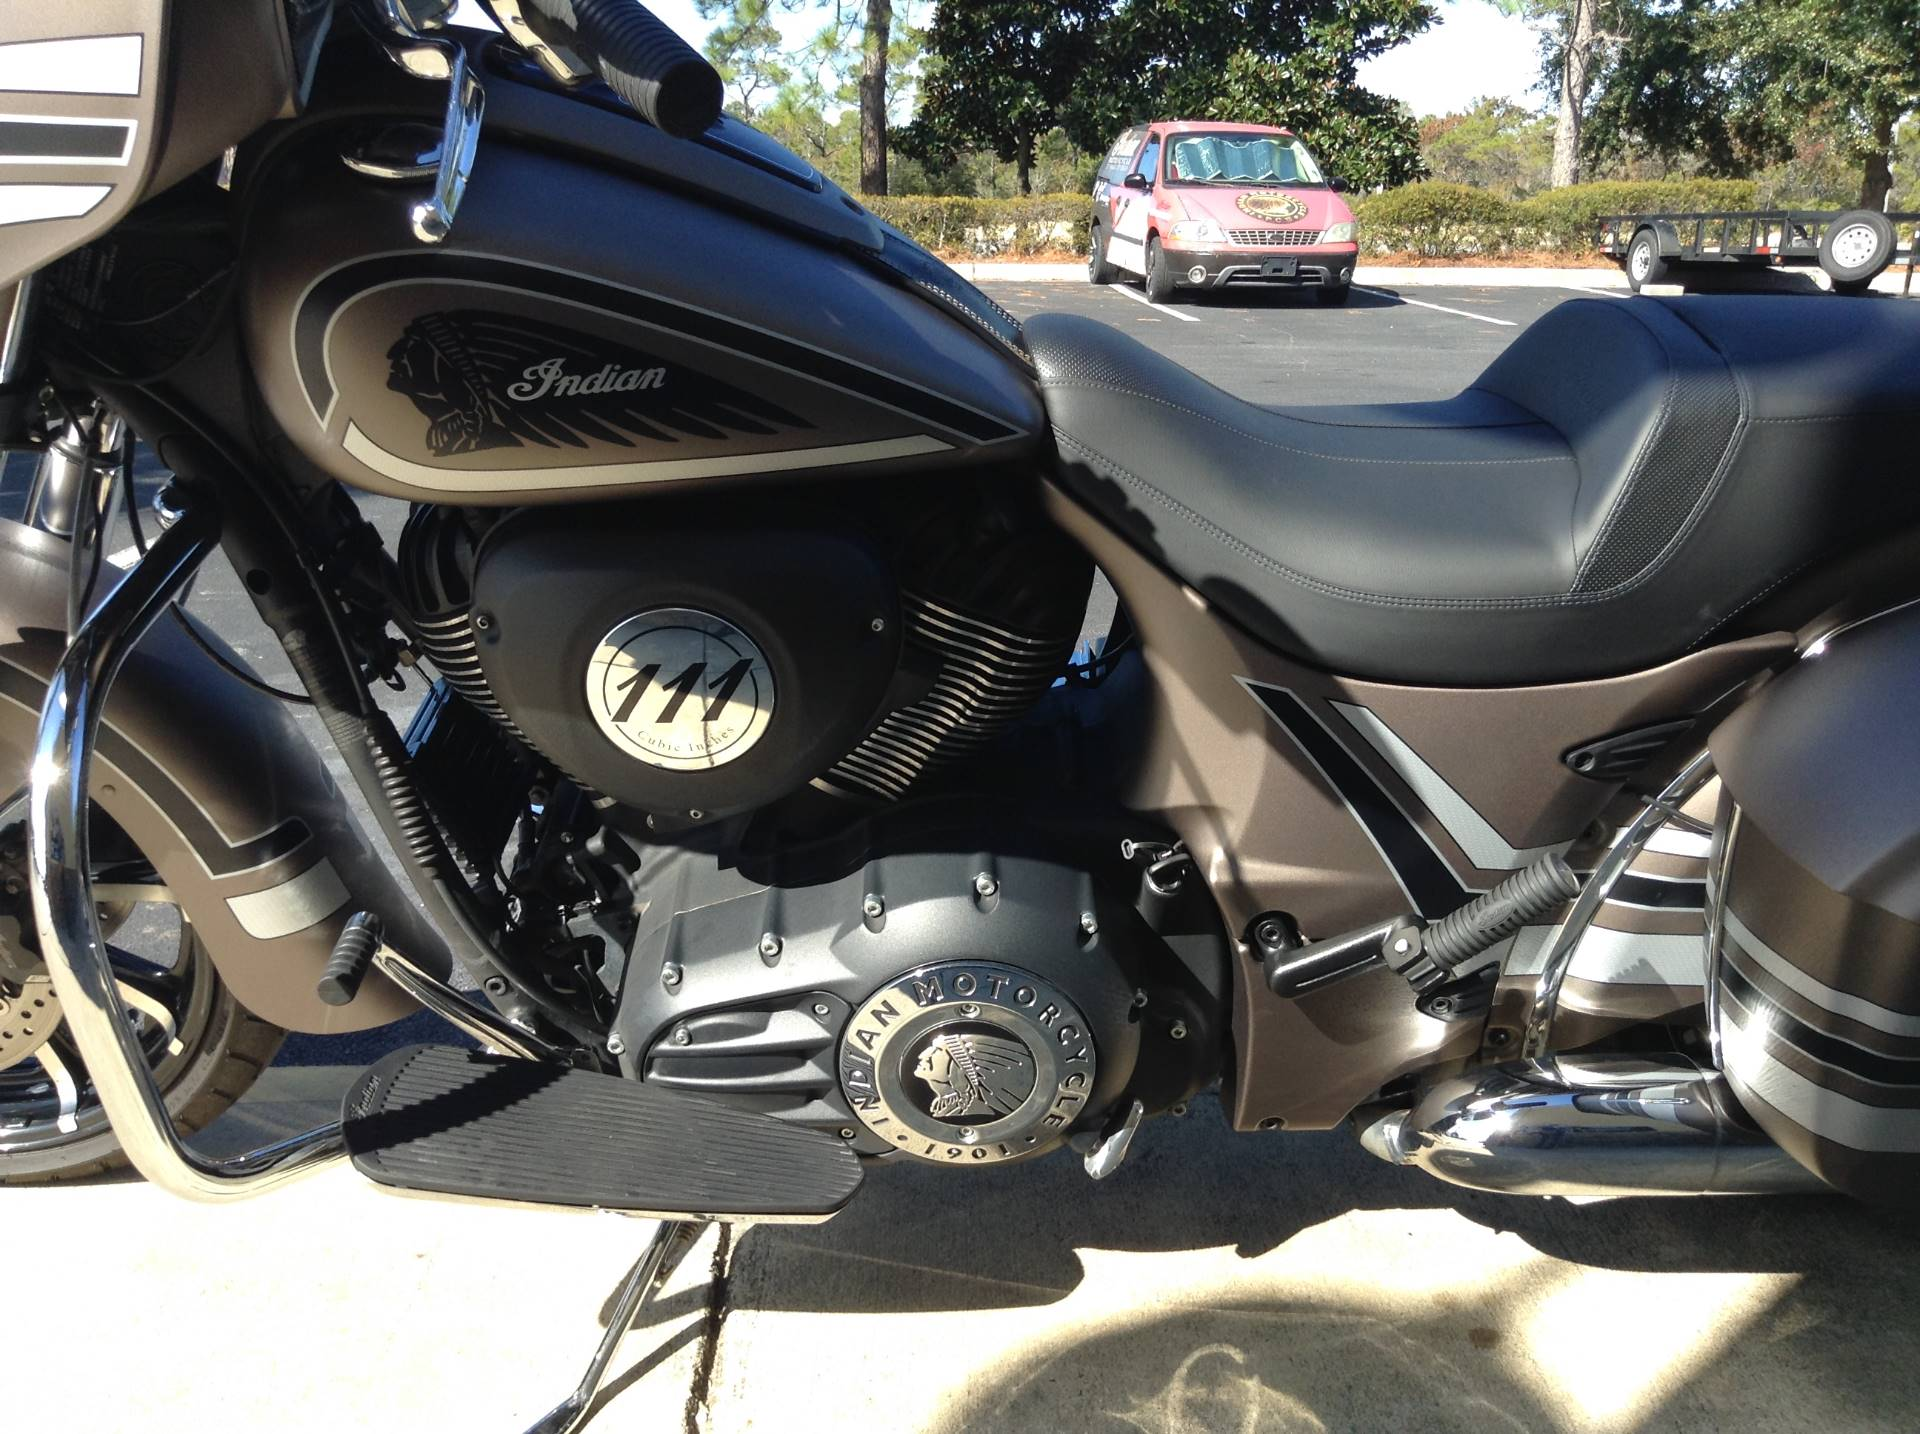 2018 Indian CHIEFTAIN LIMITED in Panama City Beach, Florida - Photo 12